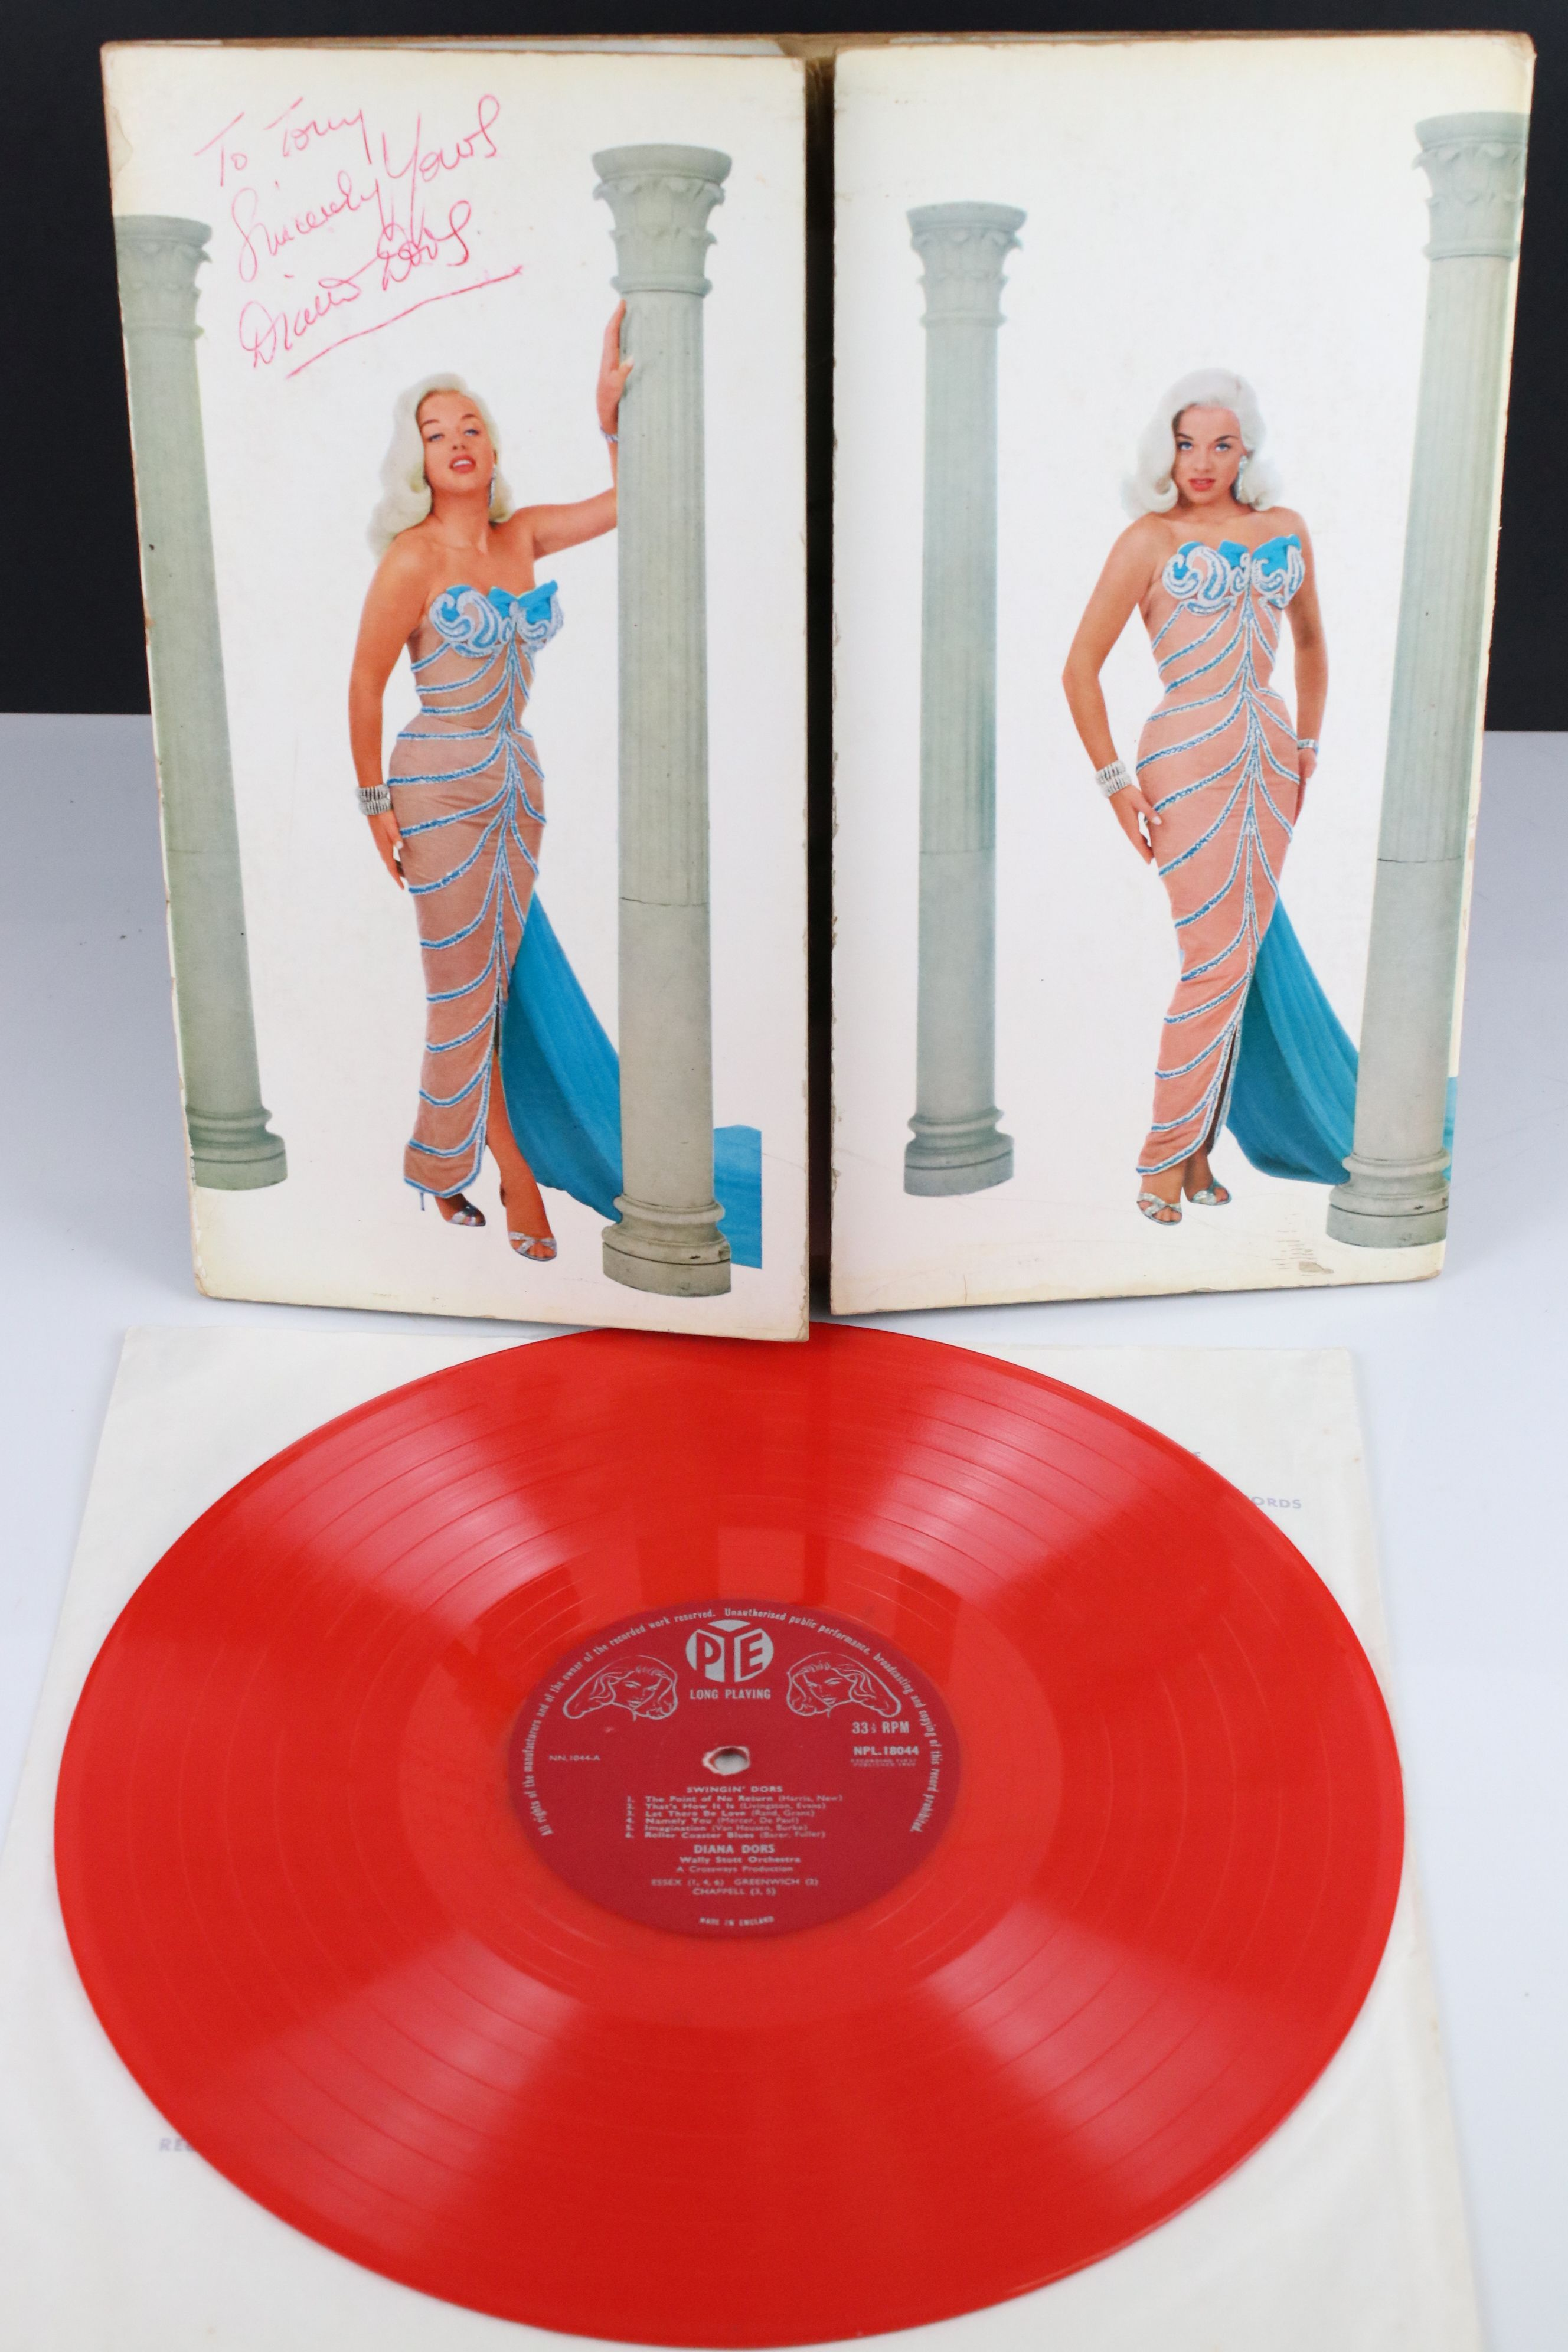 Signed Vinyl - Diana Dors Swingin Dors LPs on Pye red vinyl, vg, autographed 'To Tony Sincerely - Image 3 of 6